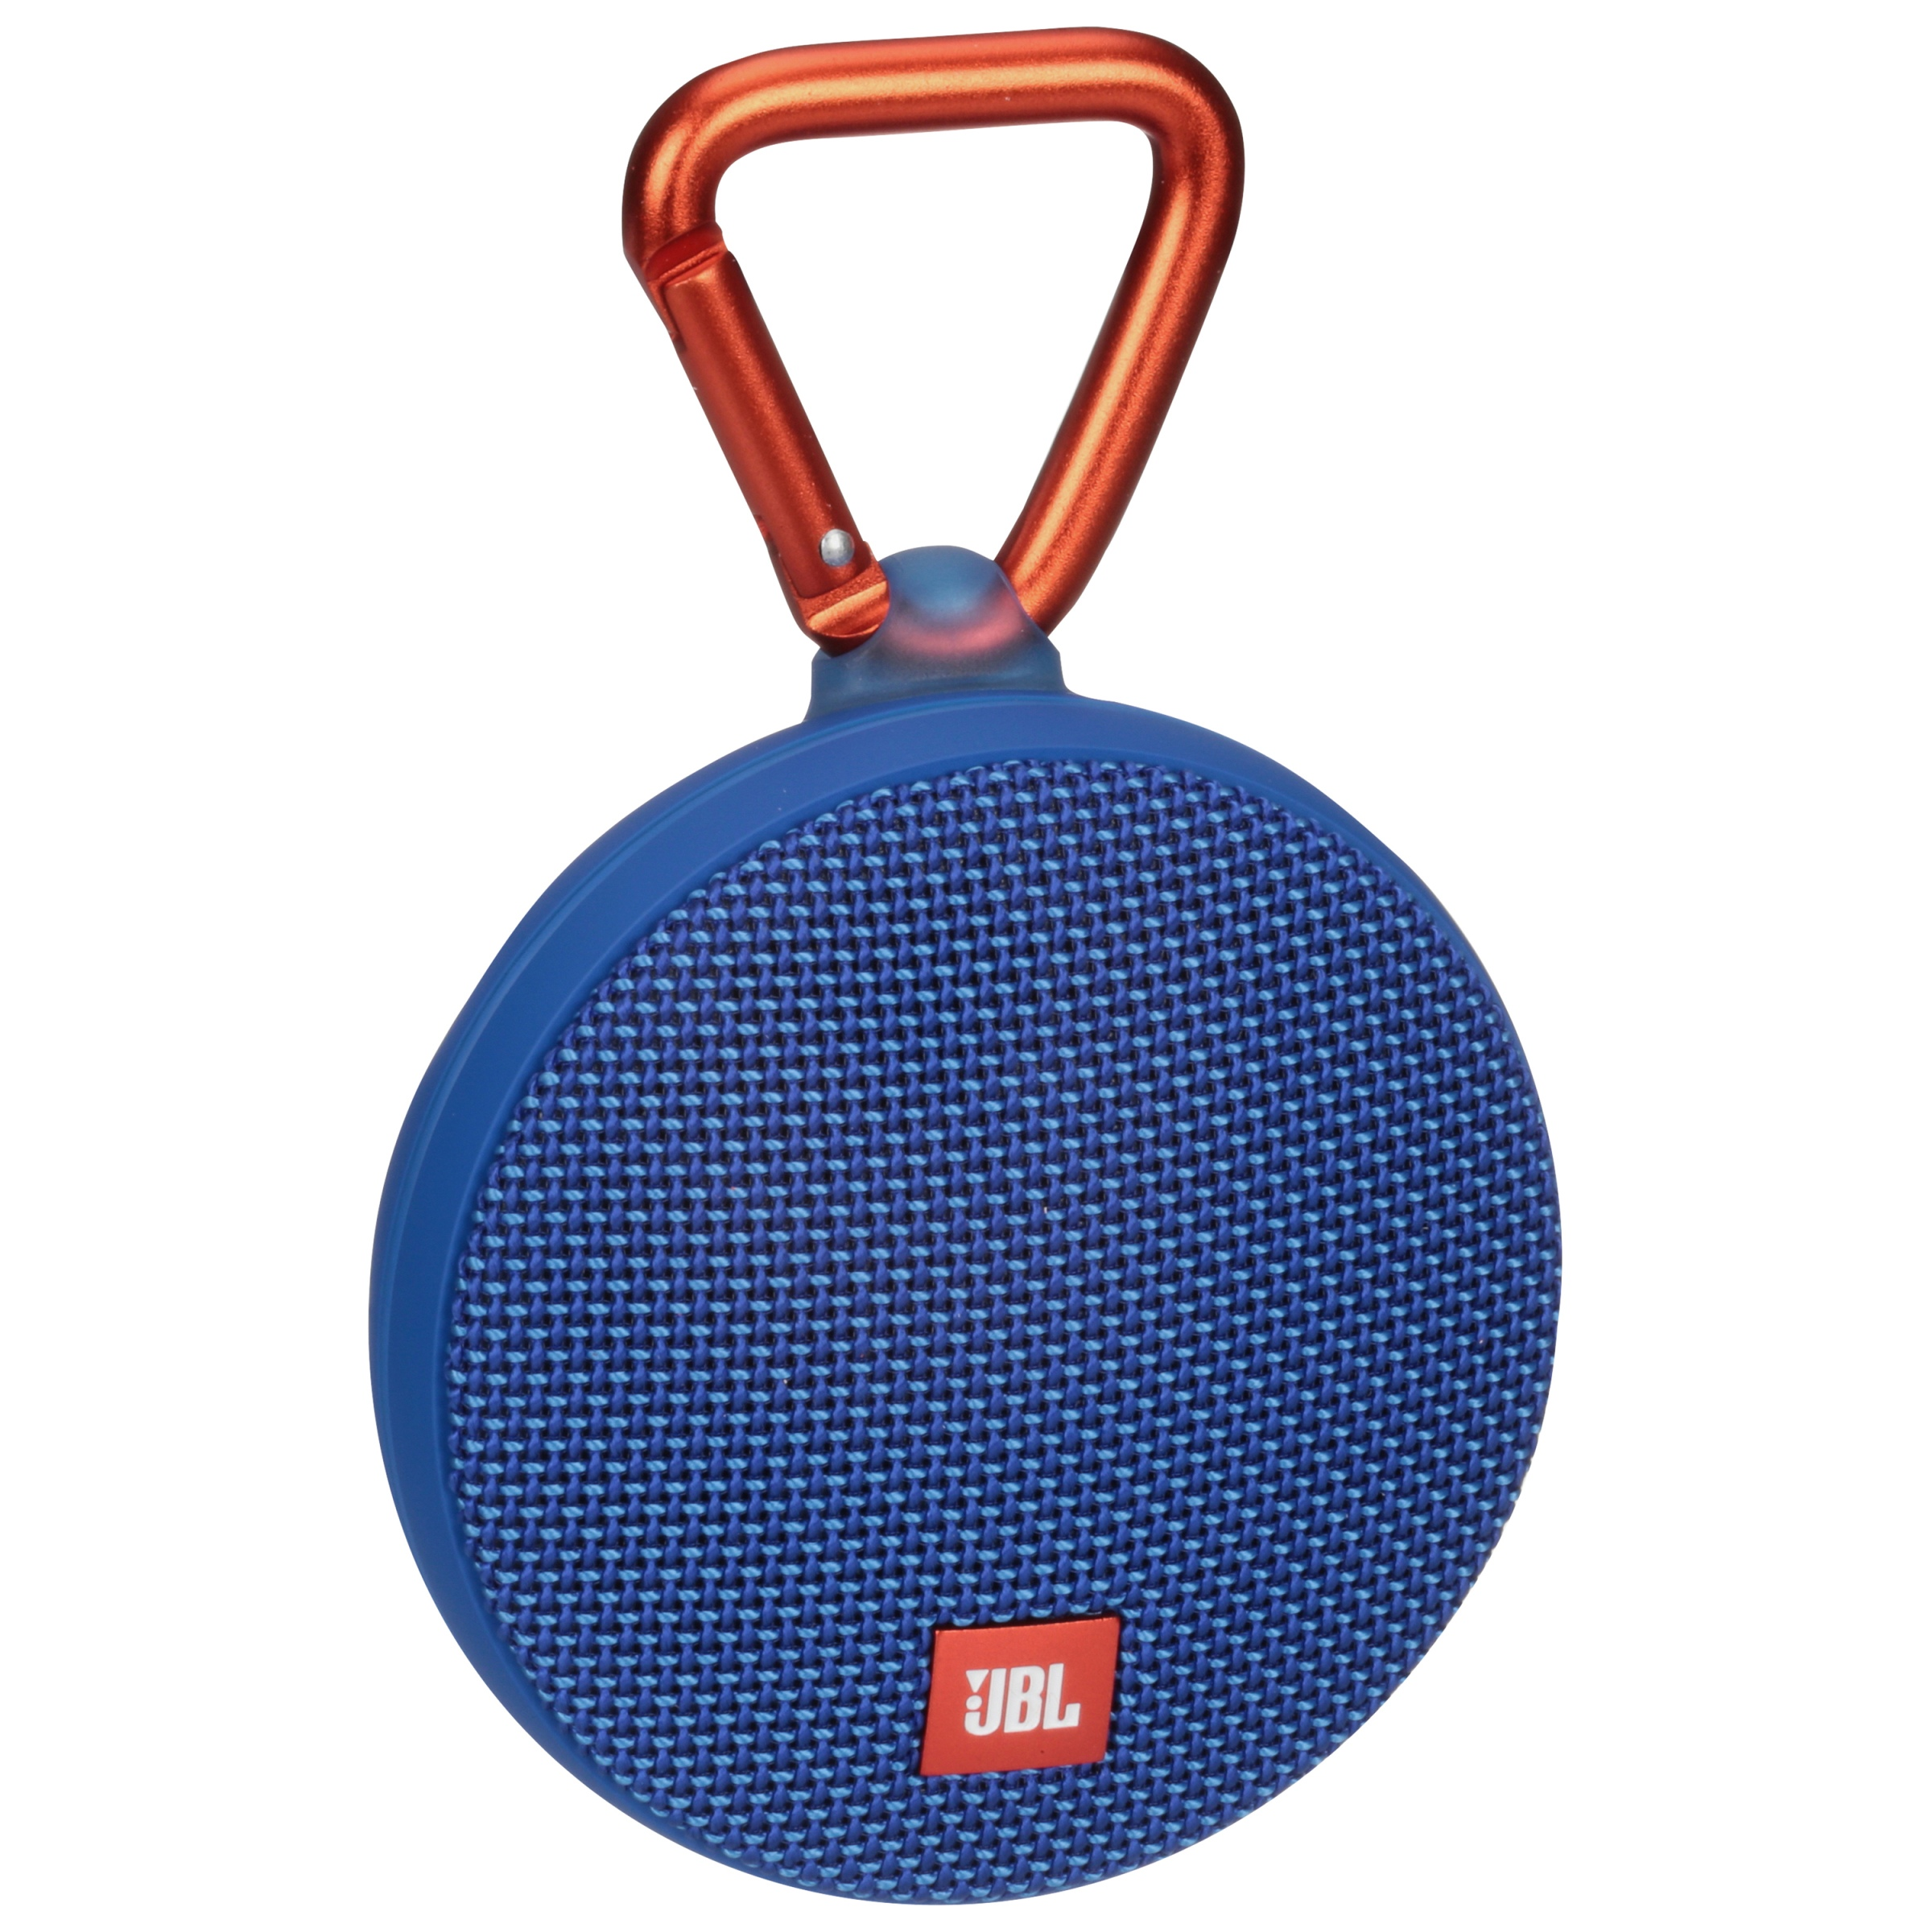 JBL® Clip 2 Portable Bluetooth Speaker Box